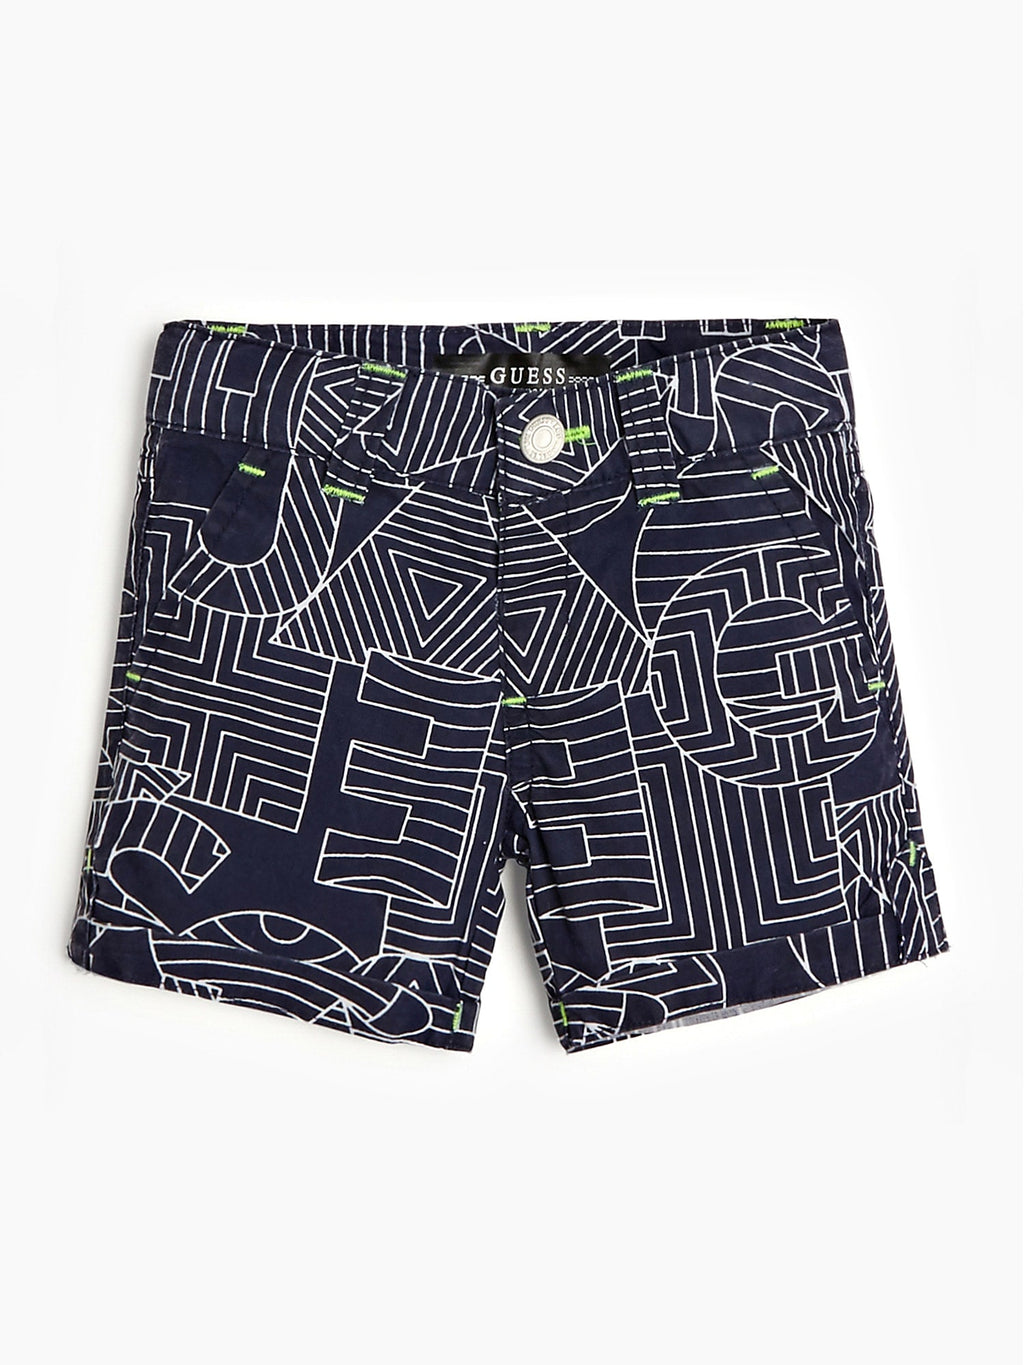 Guess Blue Short - MamaSmile